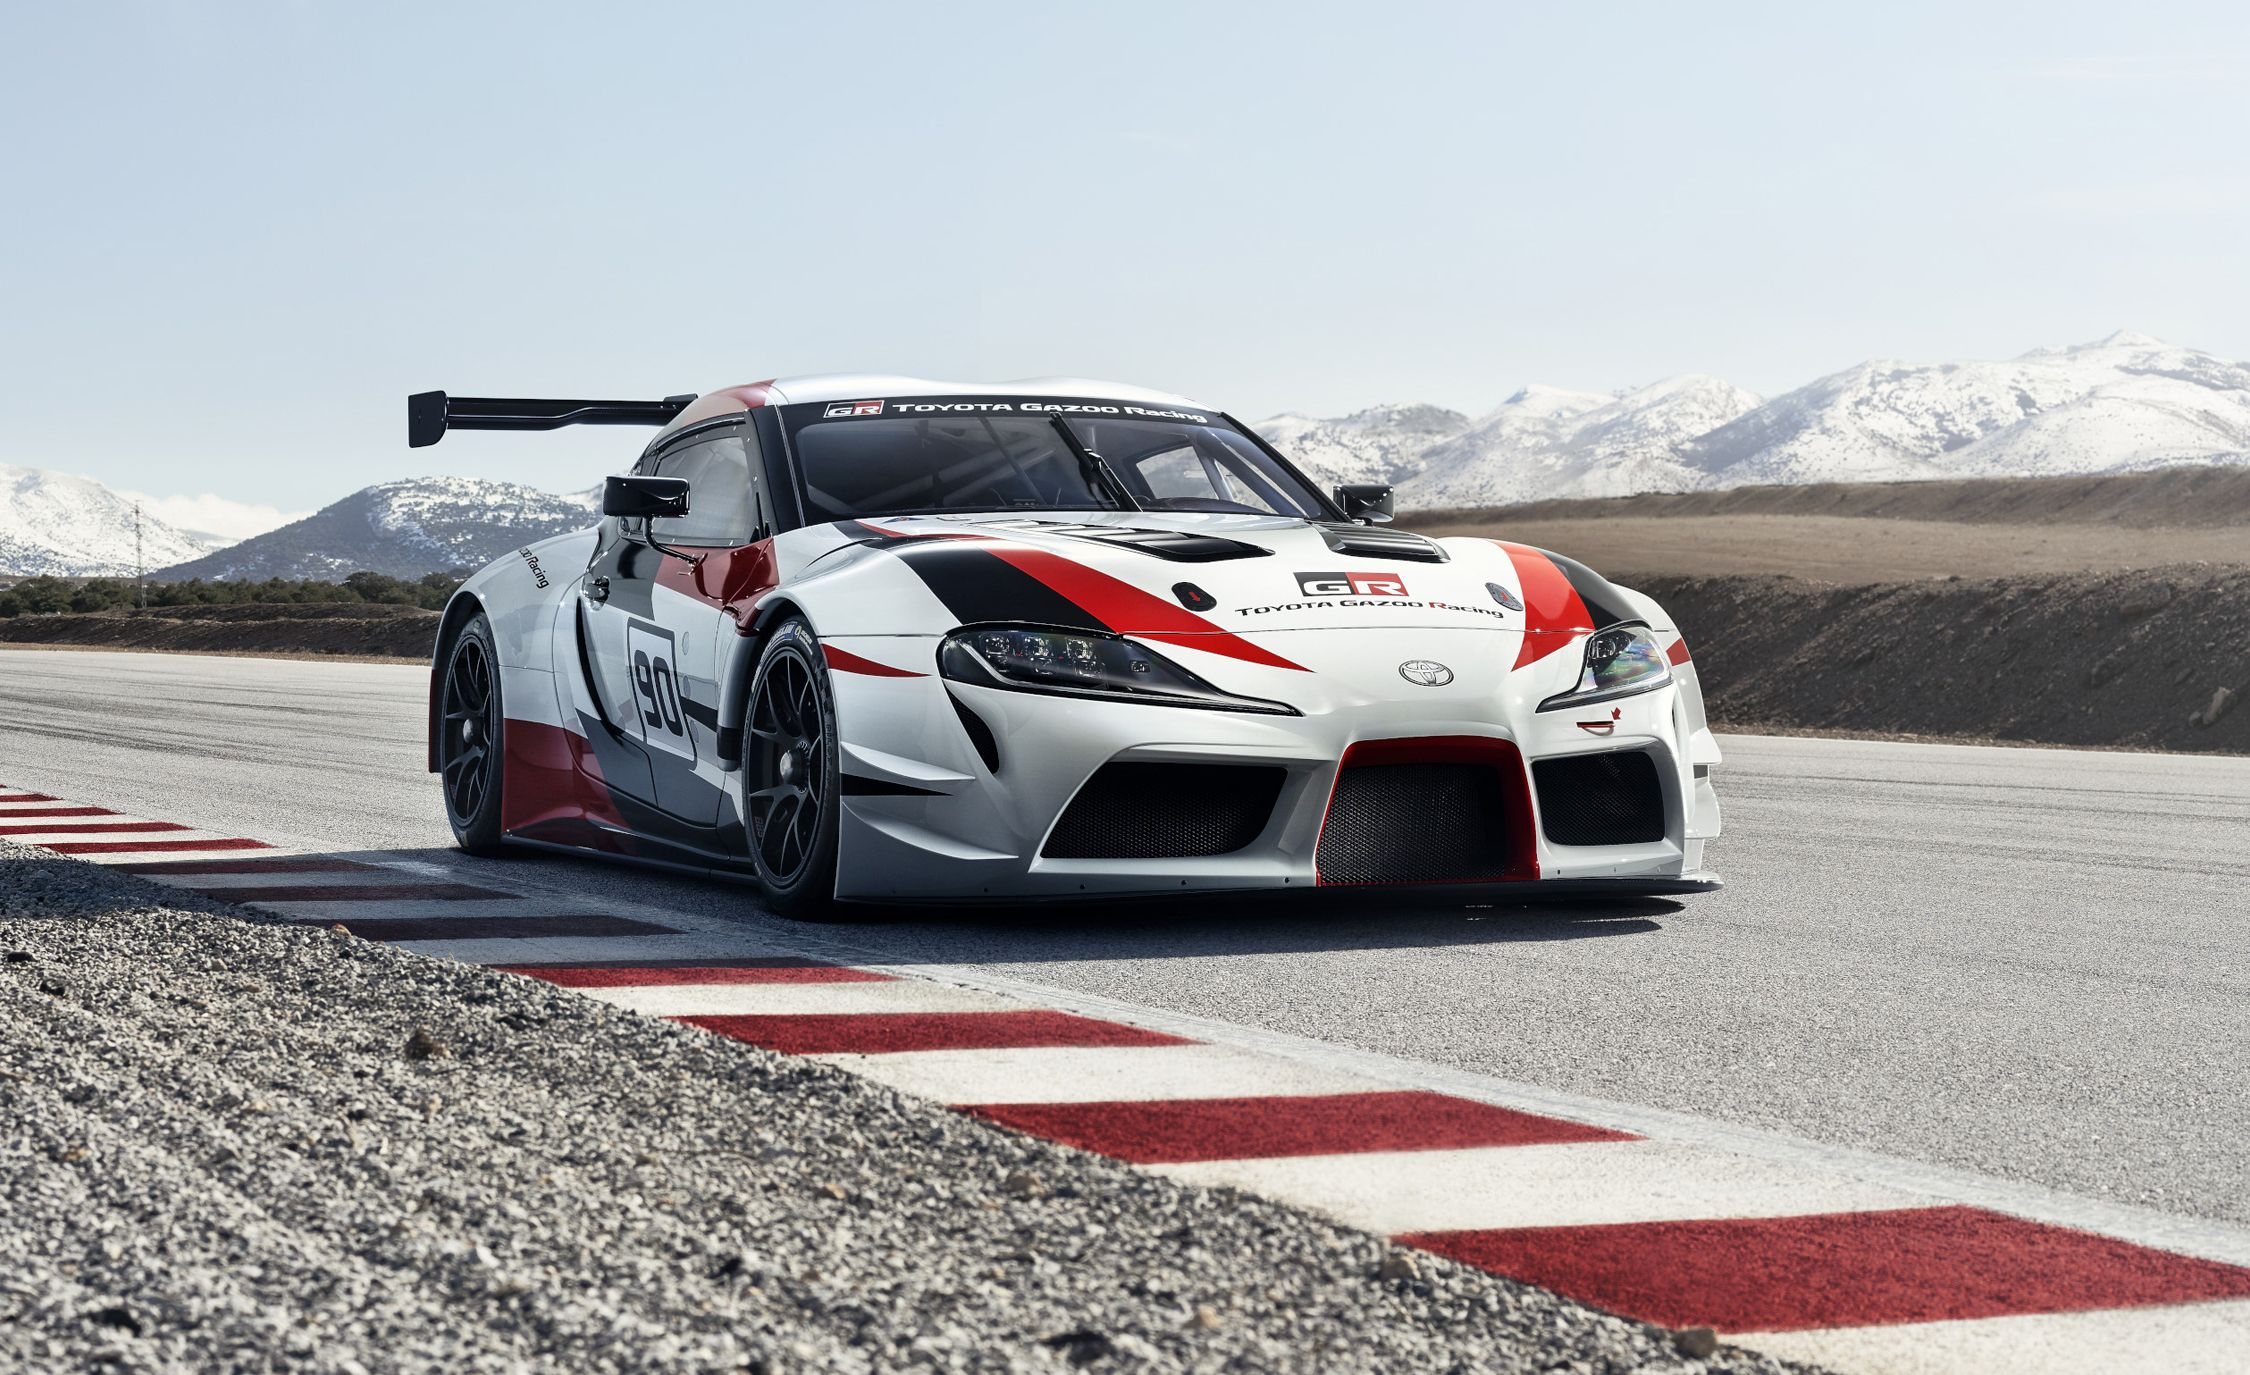 Toyota Gr Supra Racing Concept The Supra Is Officially